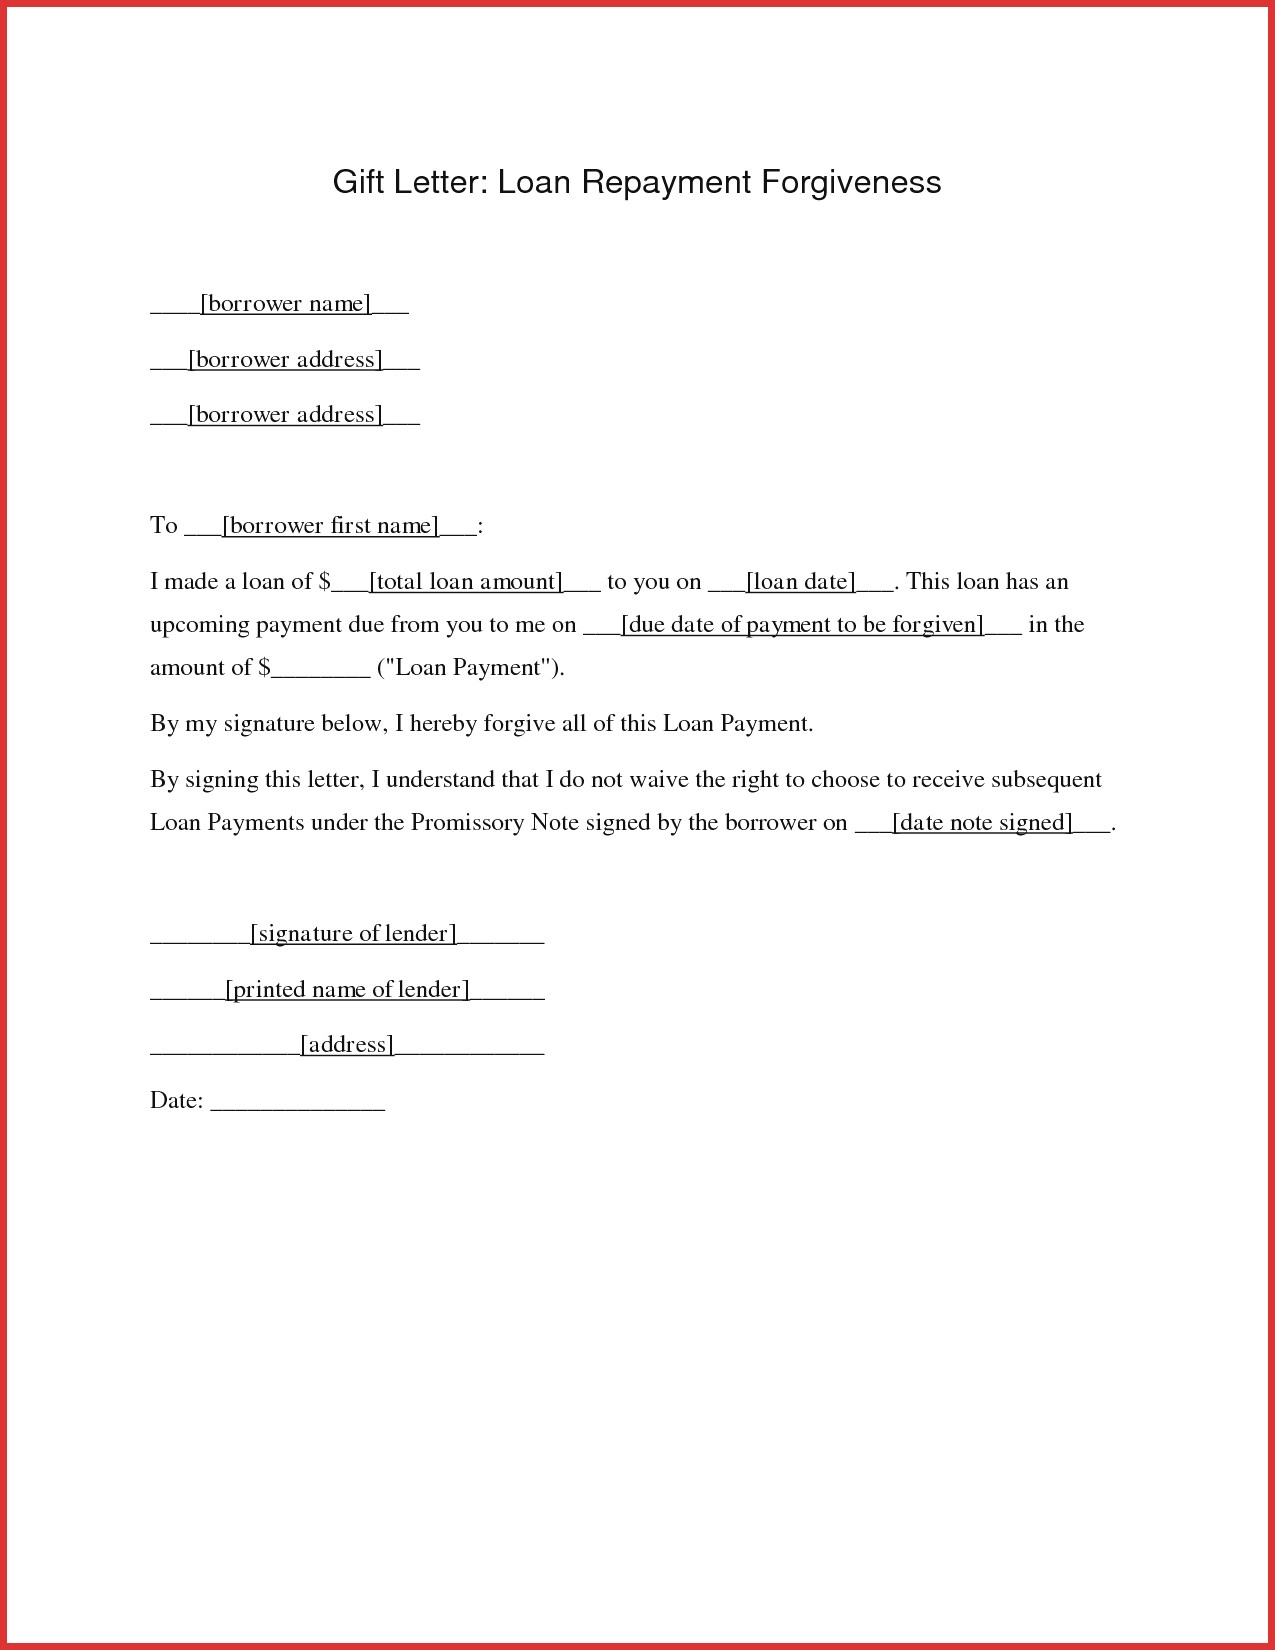 Personal Loan Repayment Letter Template - Letter for Loan Valid Save Best New Refrence Fresh Inspirationa New